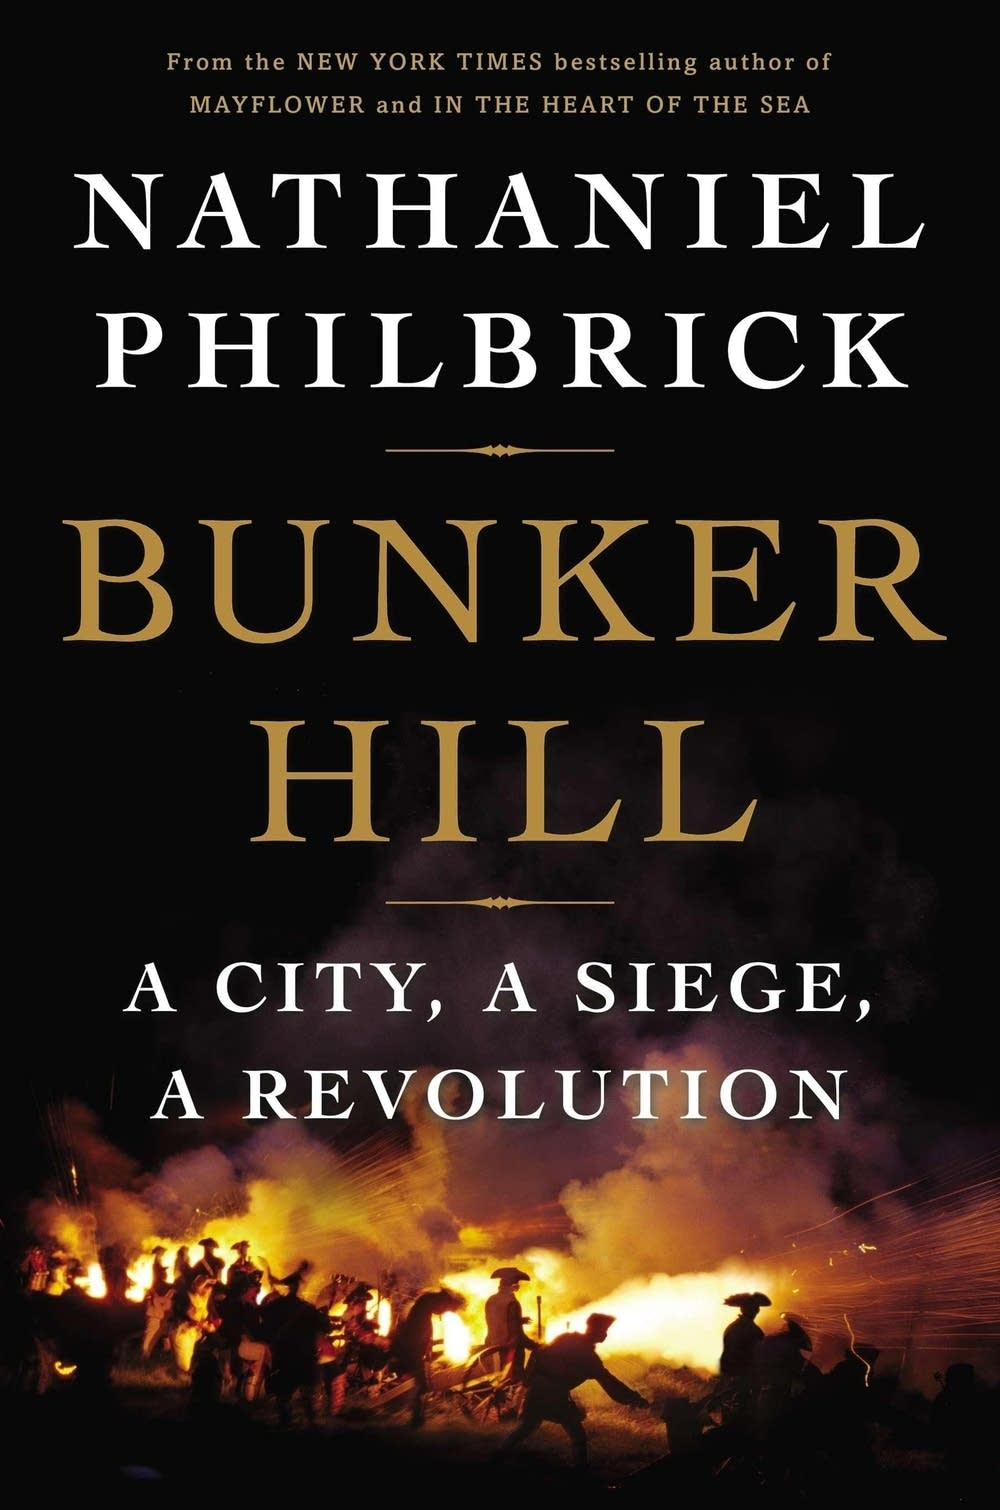 'Bunker Hill' by Nathaniel Philbrick